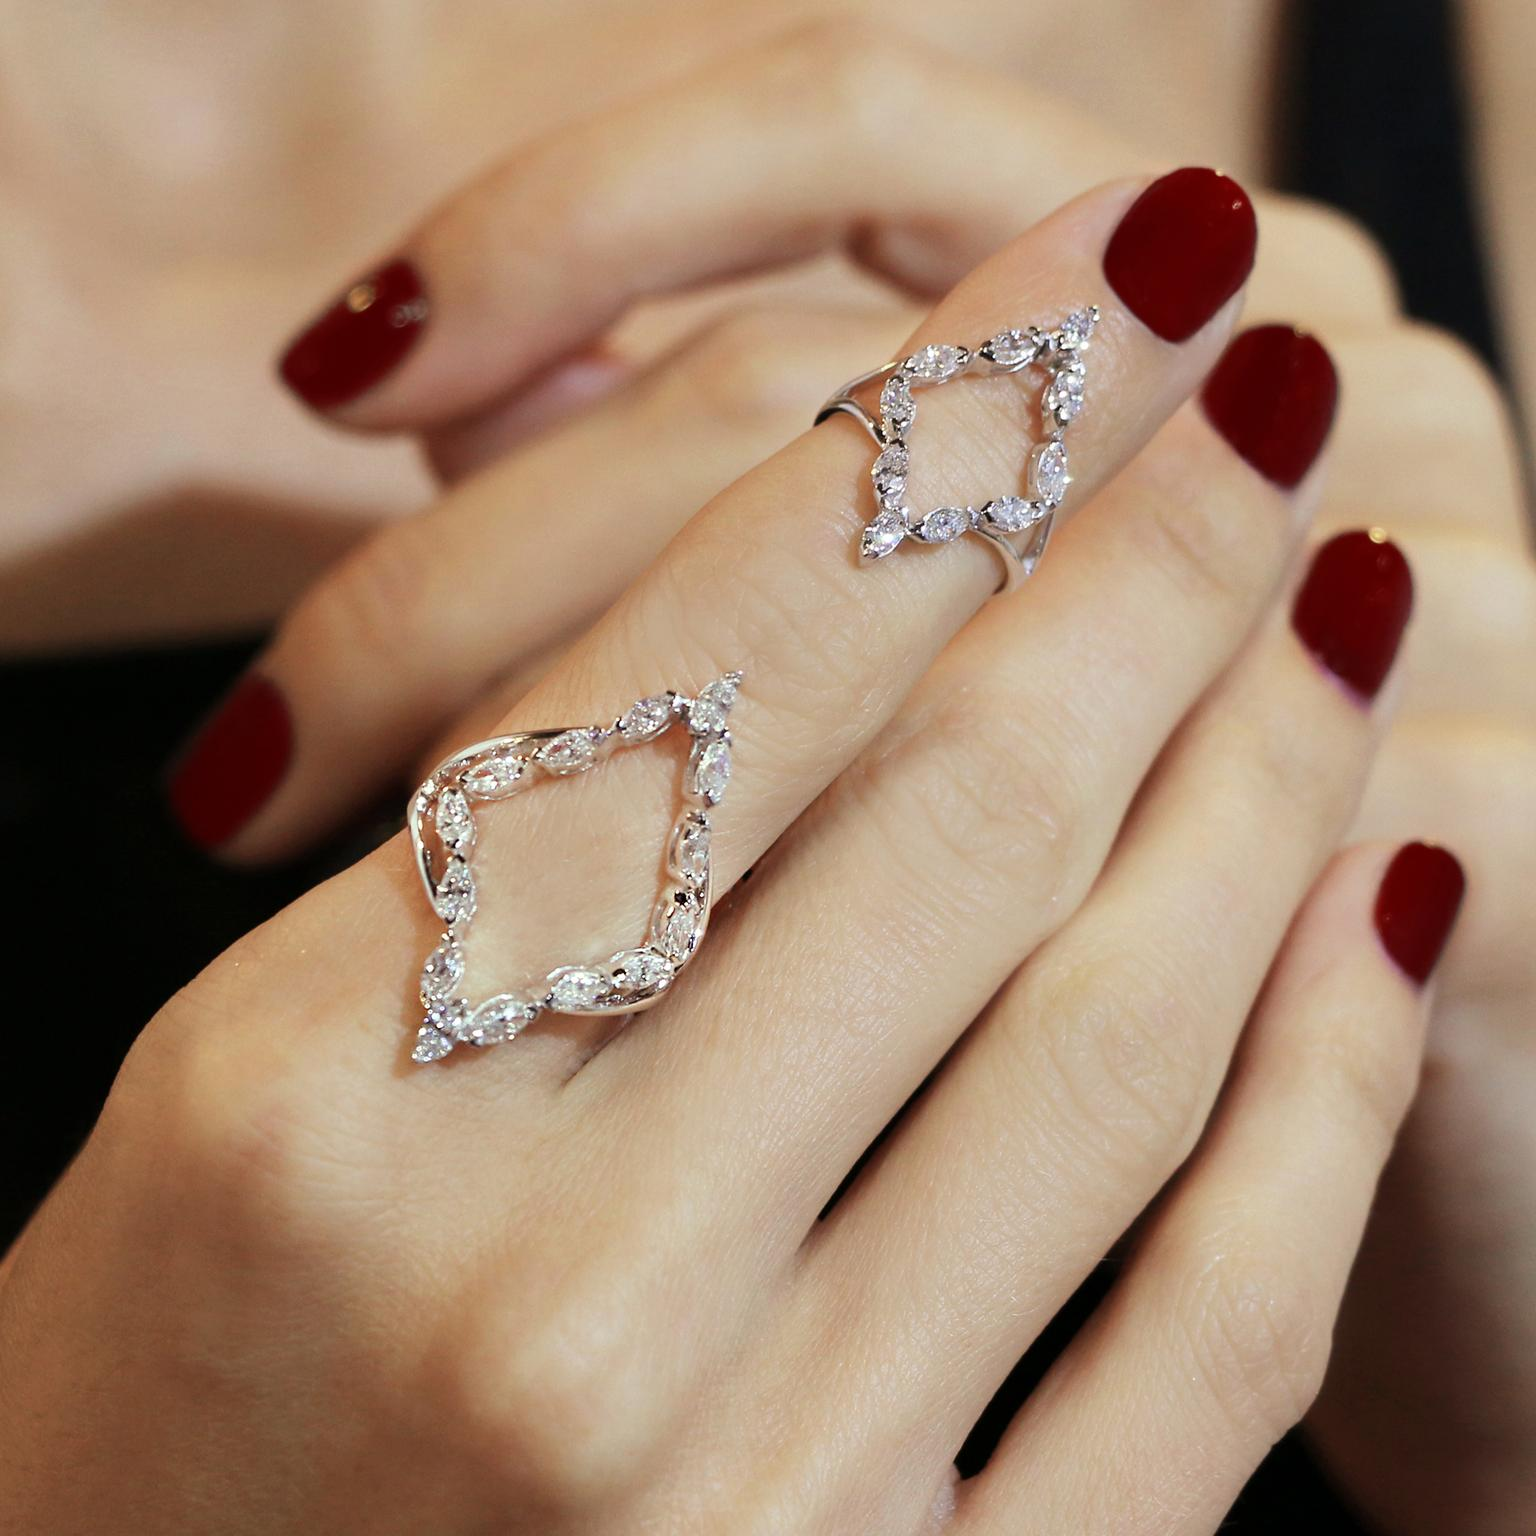 Sidney Chung for Plukka diamond rings